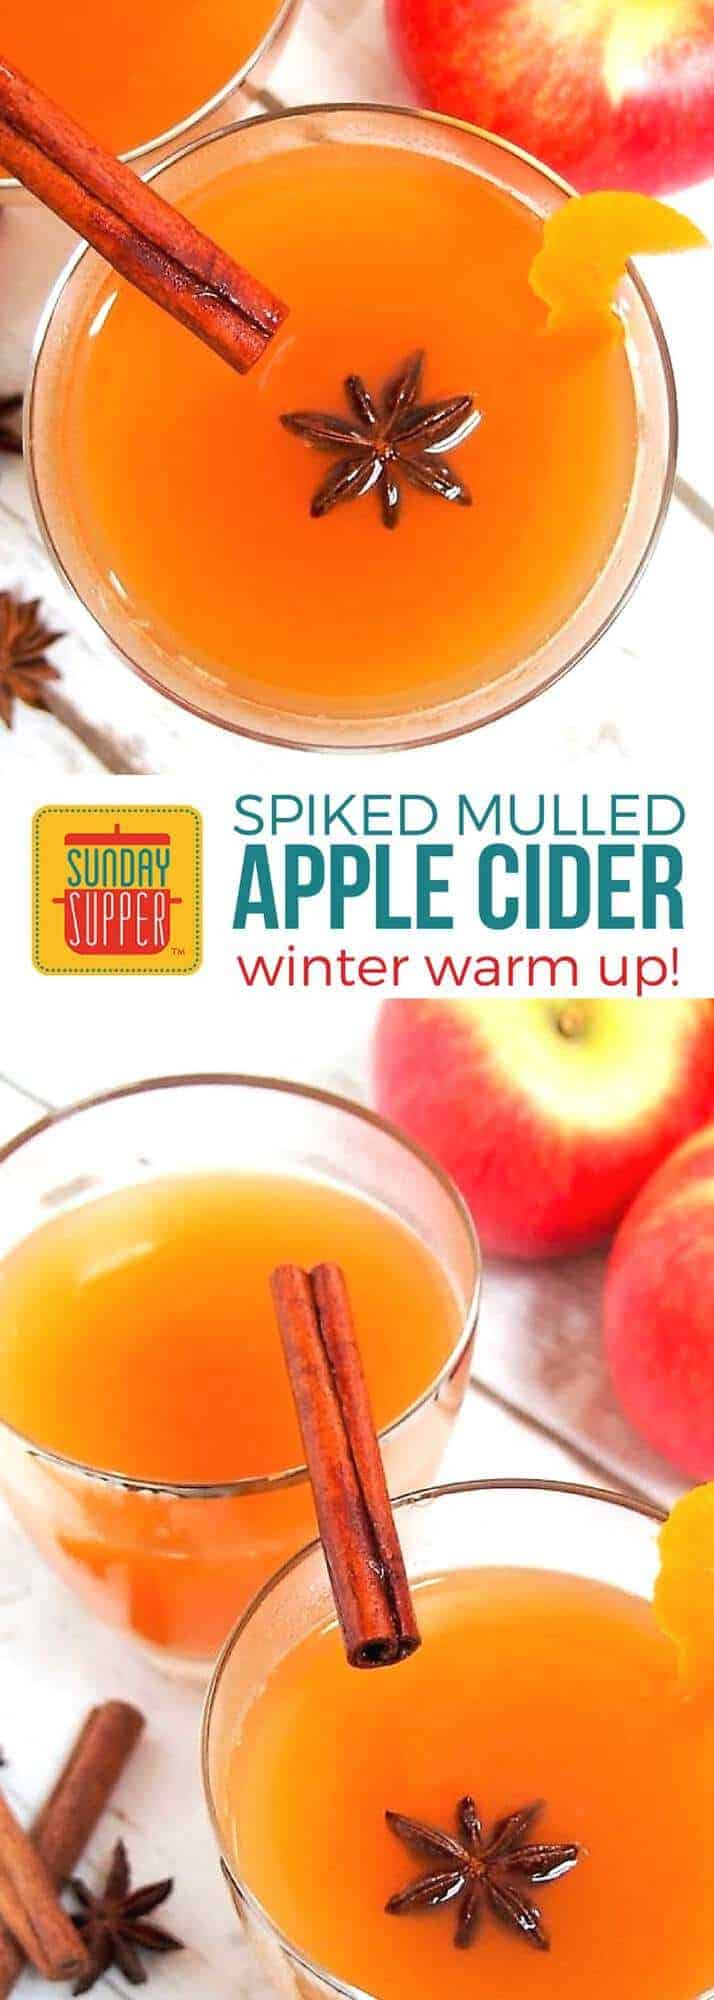 Warm up deliciously with Spiked Mulled Cider this holiday season! Apple cider spiked with a little kick of brandy will be your go-to winter cocktail recipe! This easy recipe of hot apple cider with cinnamon, star anise, cloves, orange peel, and a splash of brandy will get you into the holiday spirit! We love to serve this at all of our holiday parties from Thanksgiving to Christmas, and even New Year's Eve! It's a comforting winter cocktail recipe your friends and family will love! #SundaySupper CocktailRecipes #ComfortFoodRecipe #HolidayRecipes